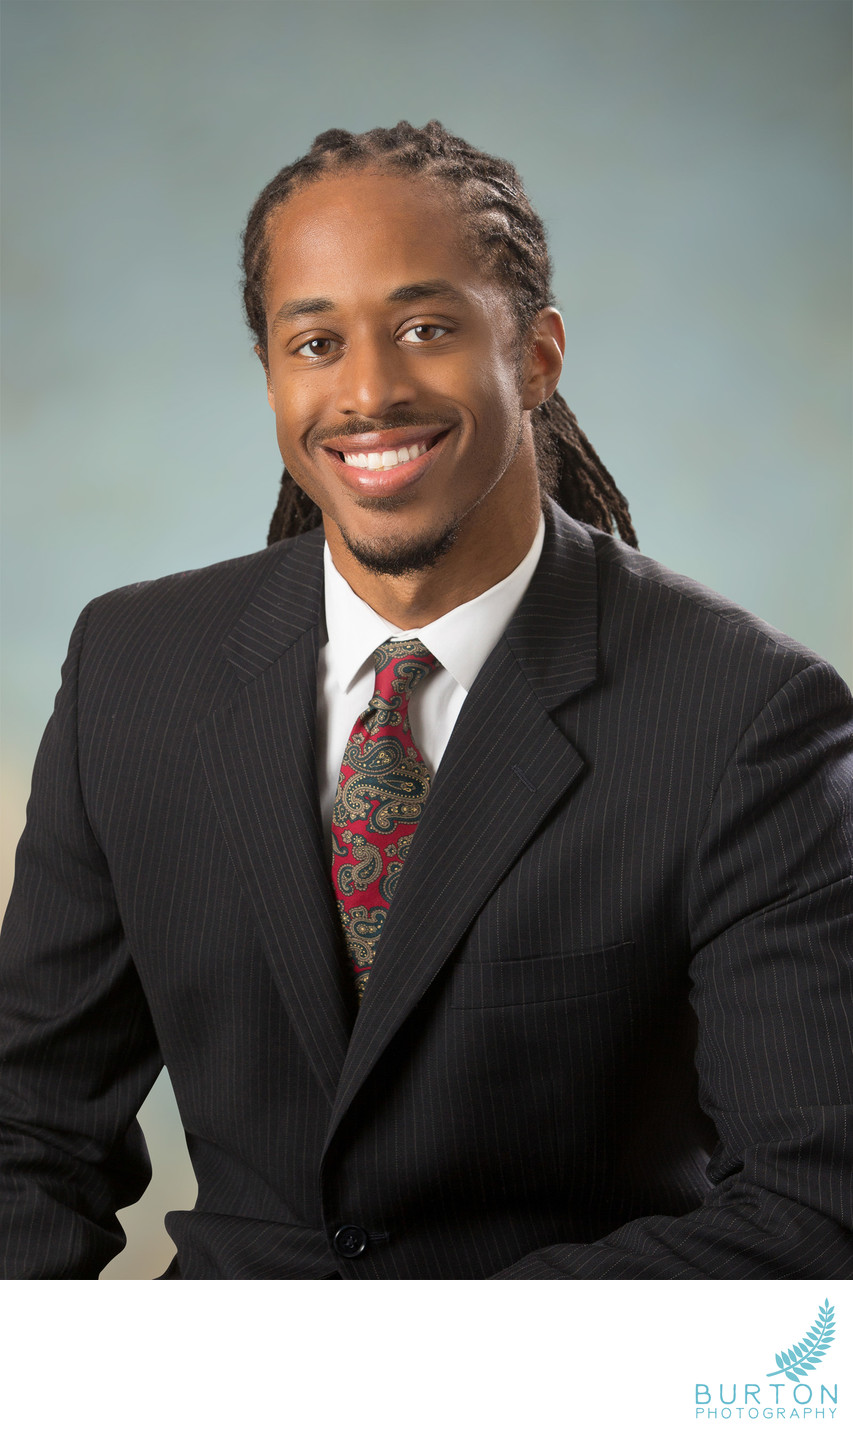 Boone Commercial Head Shot Attorney